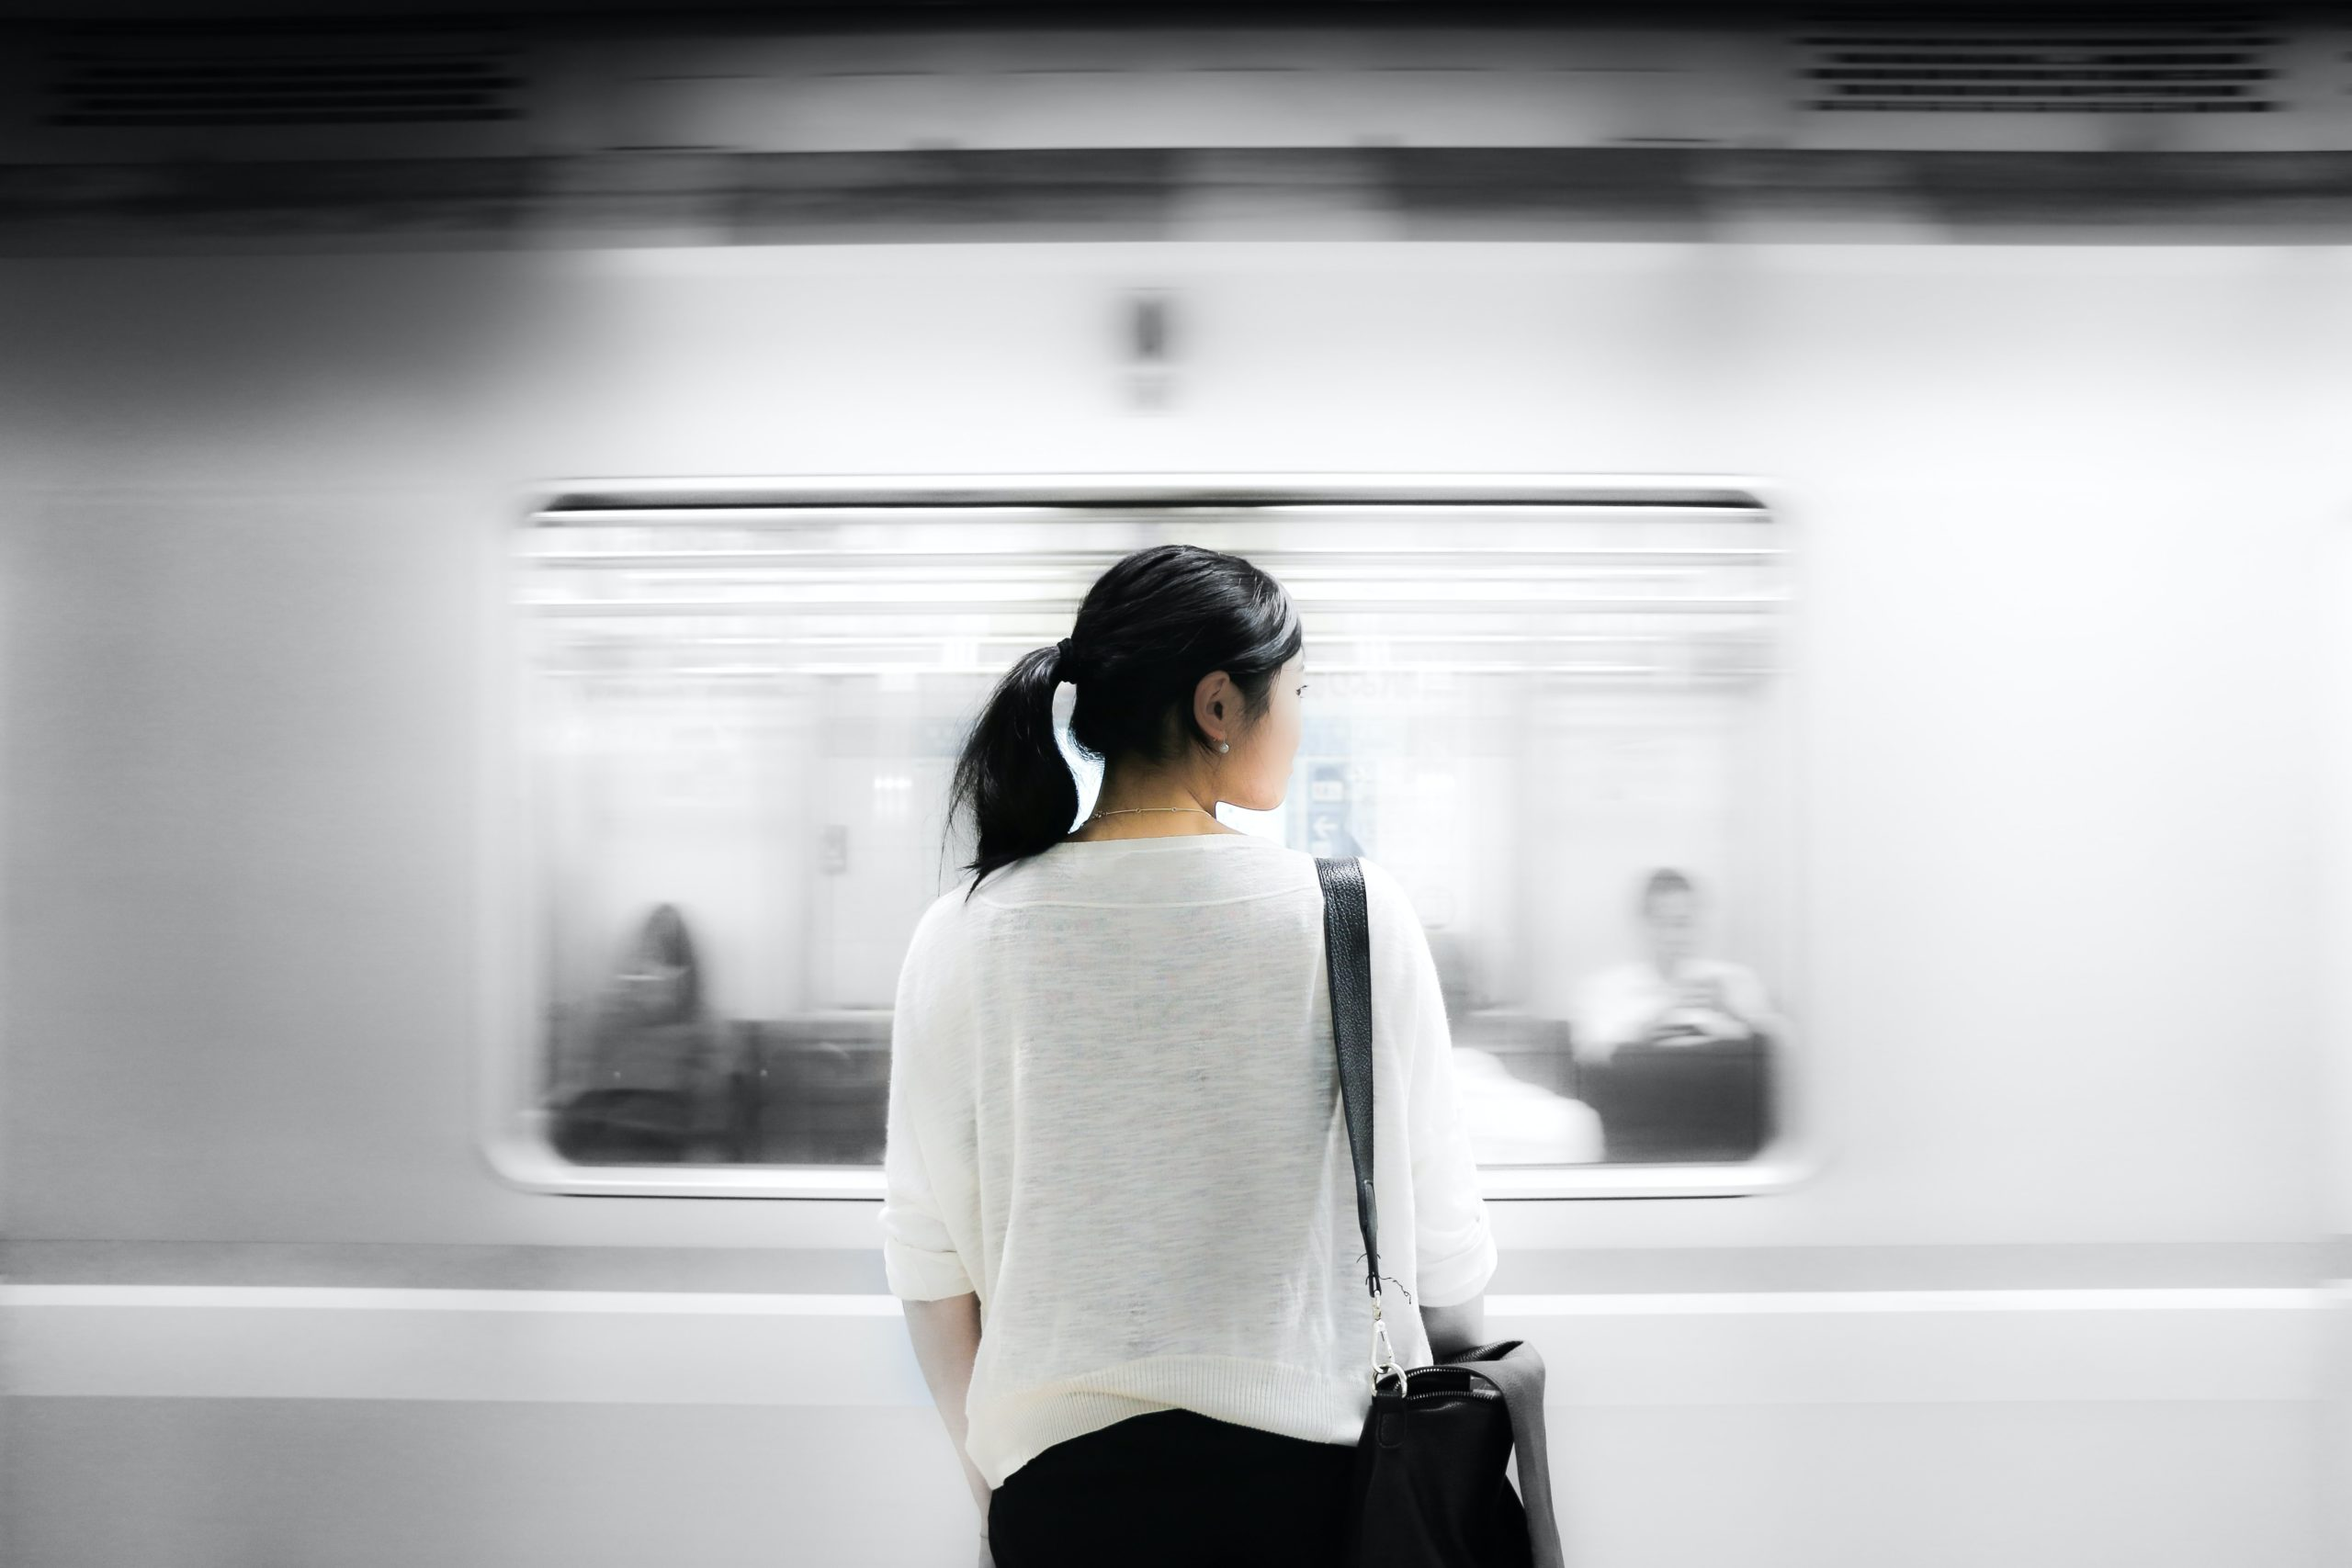 Woman in white with black hair in a pony tail and a black handbag stands in front of a quickly moving train.